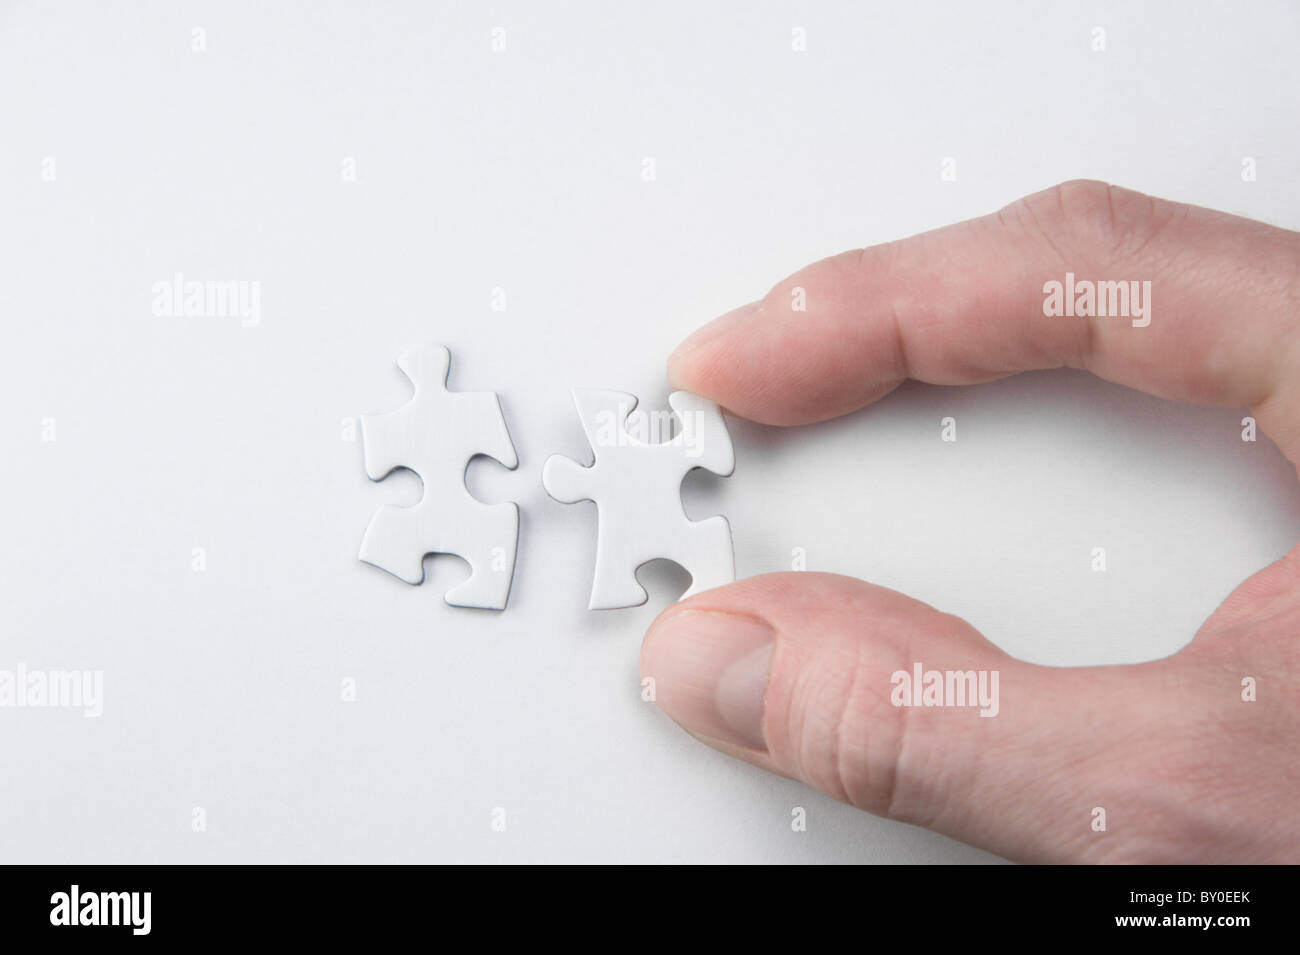 A hand, connecting two pieces of a puzzle - Stock Image